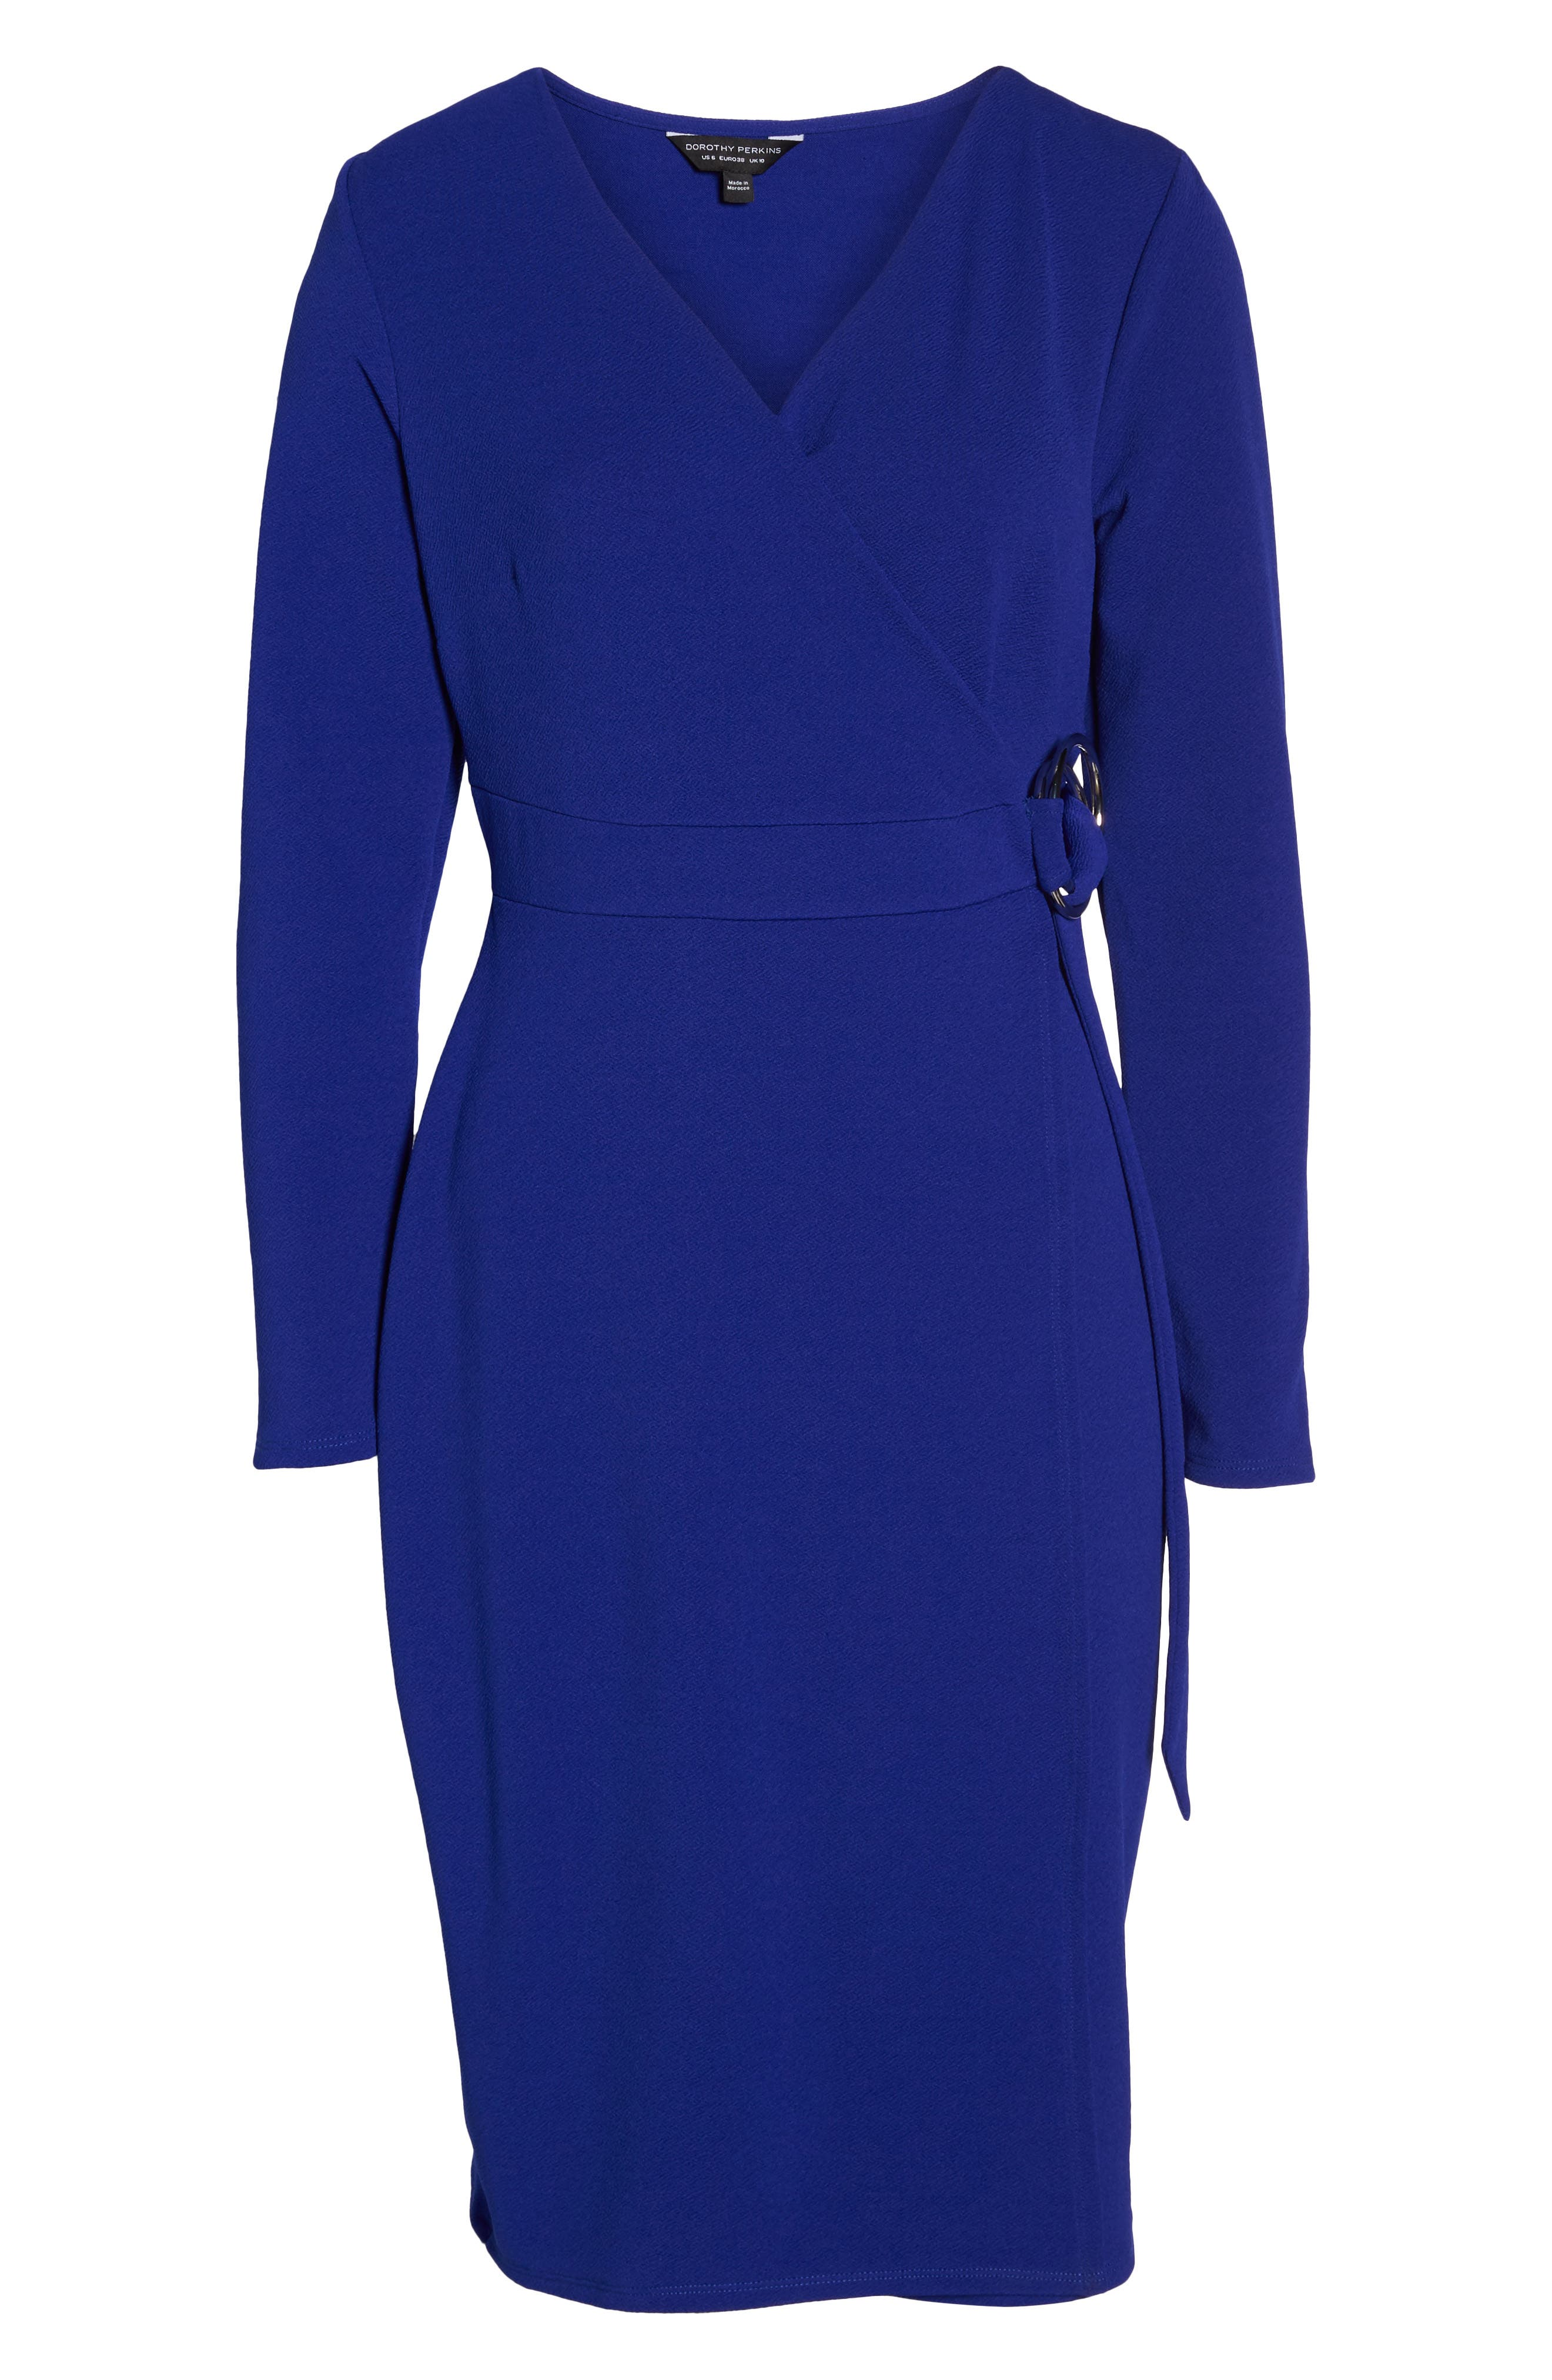 Ring Tie Wrap Dress,                             Alternate thumbnail 6, color,                             Cobalt